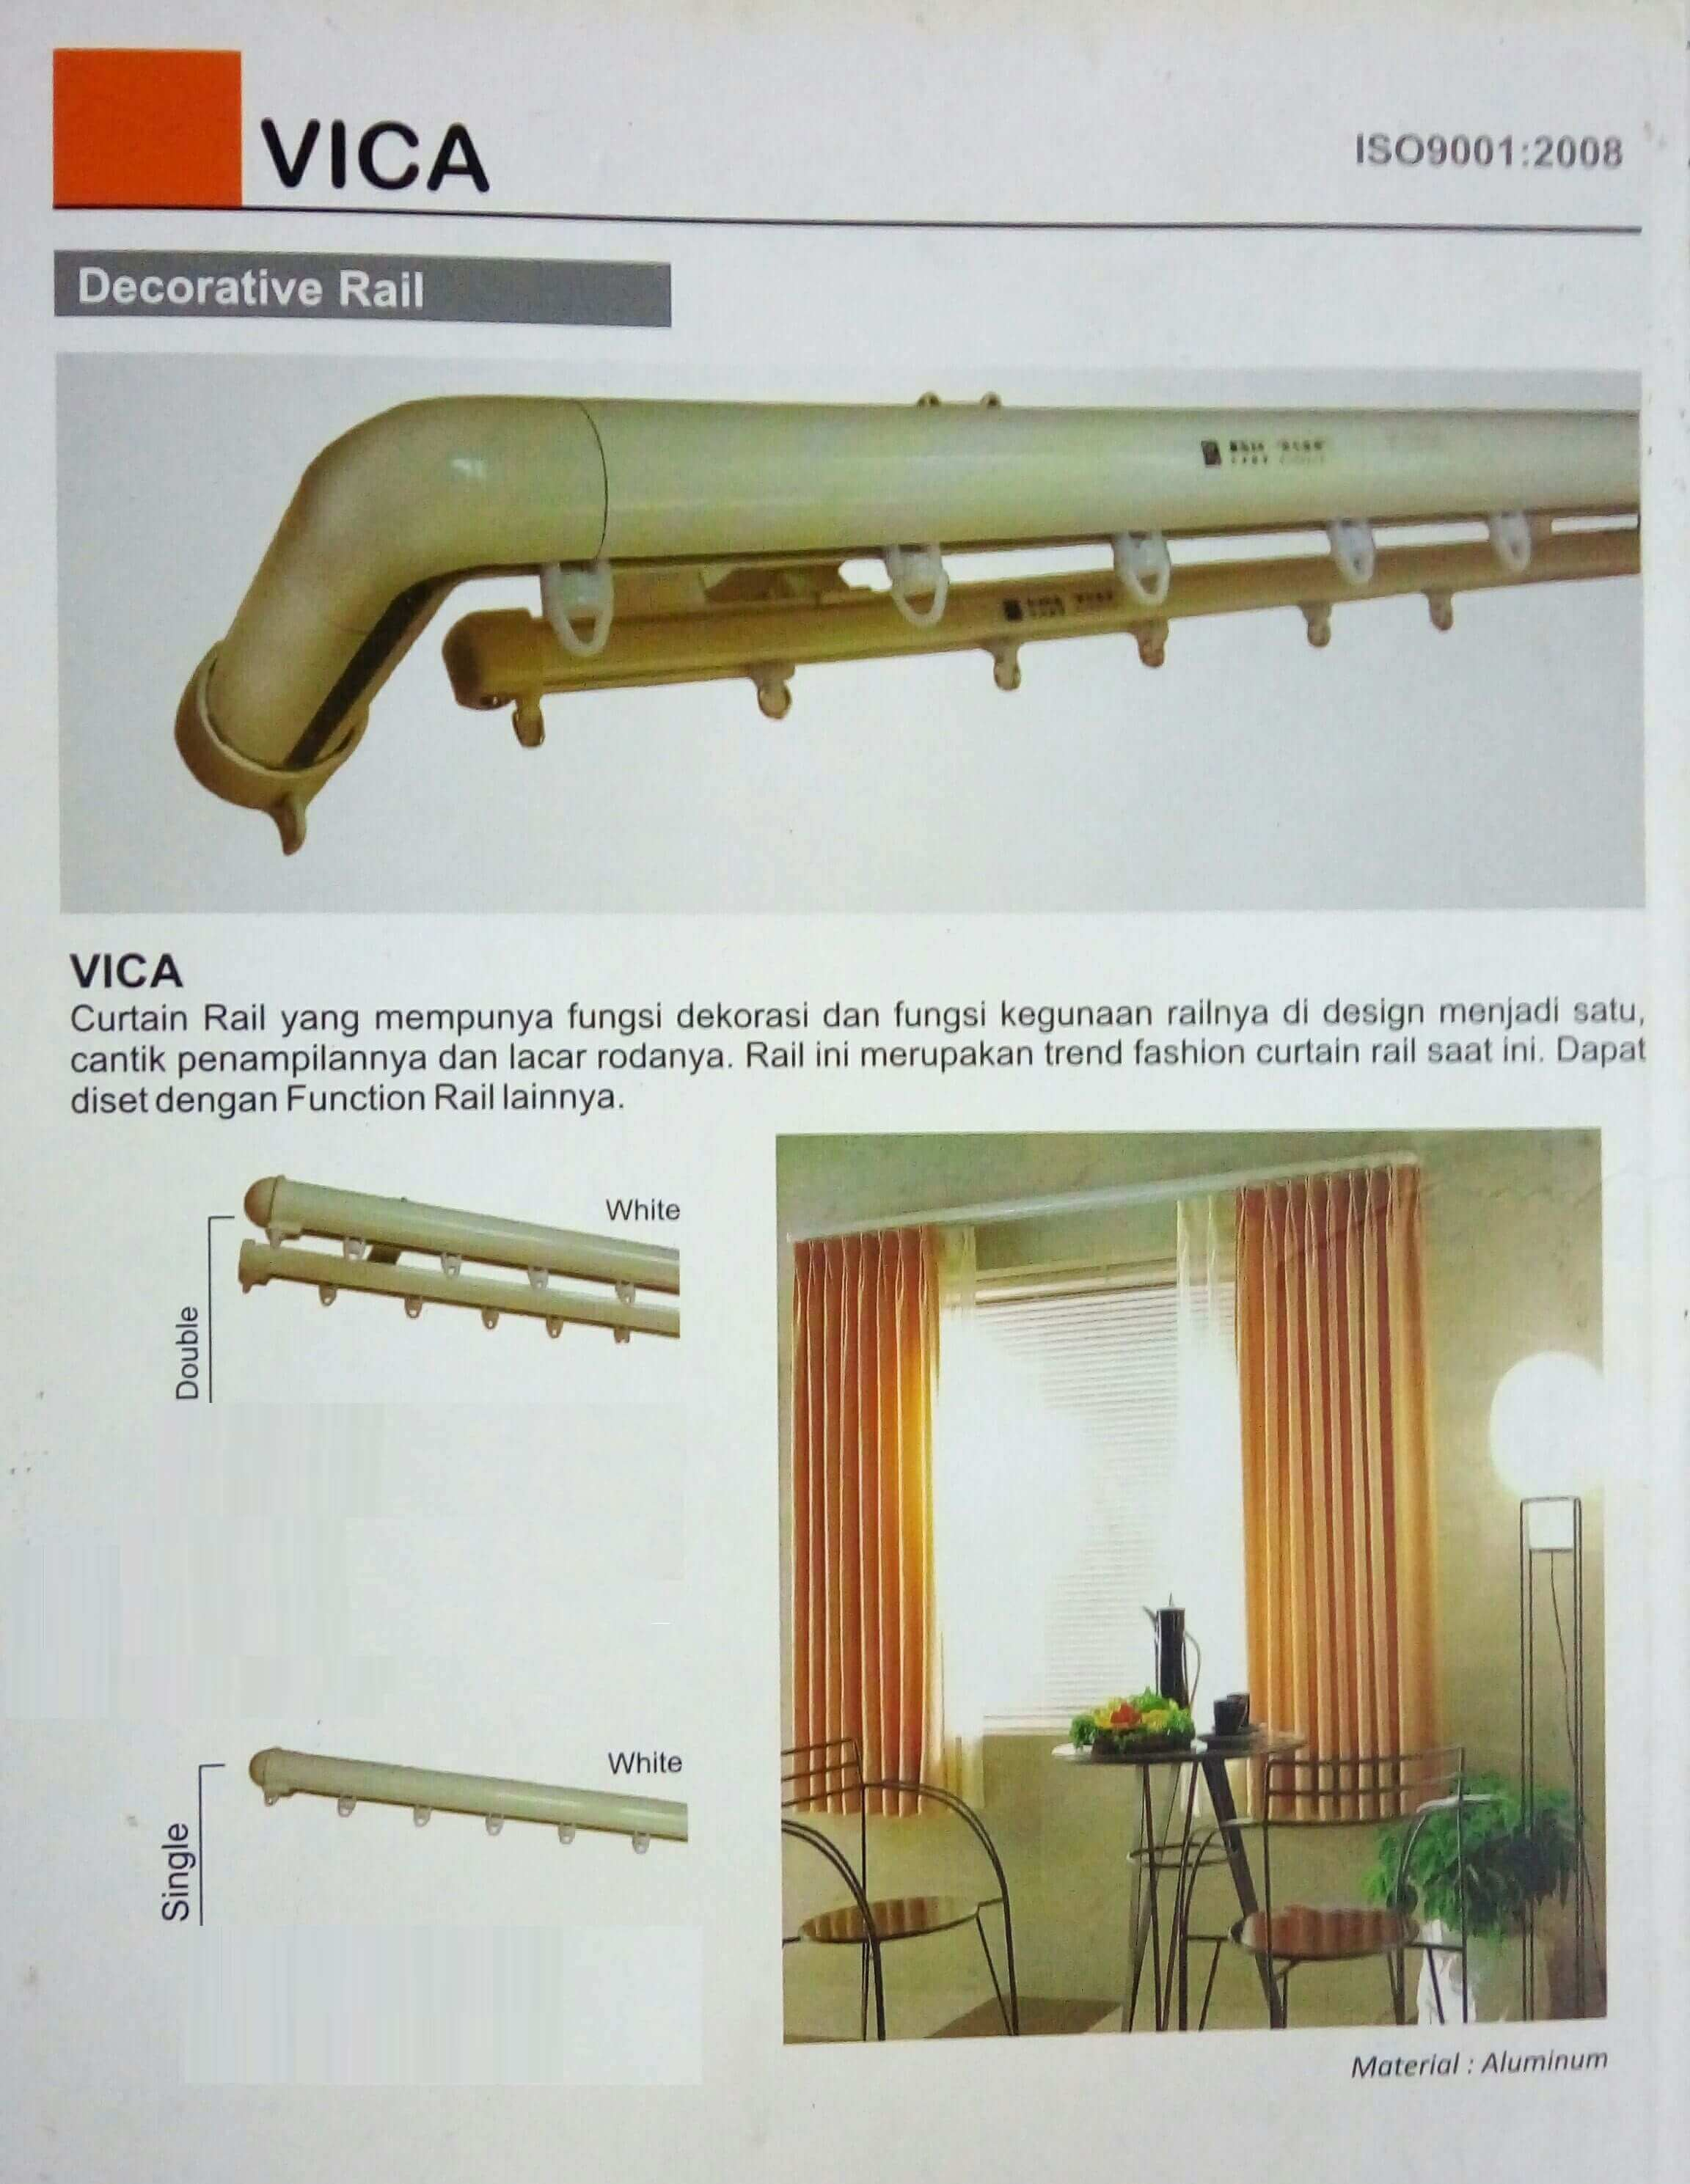 vica curtain railing decorative type untuk gorden